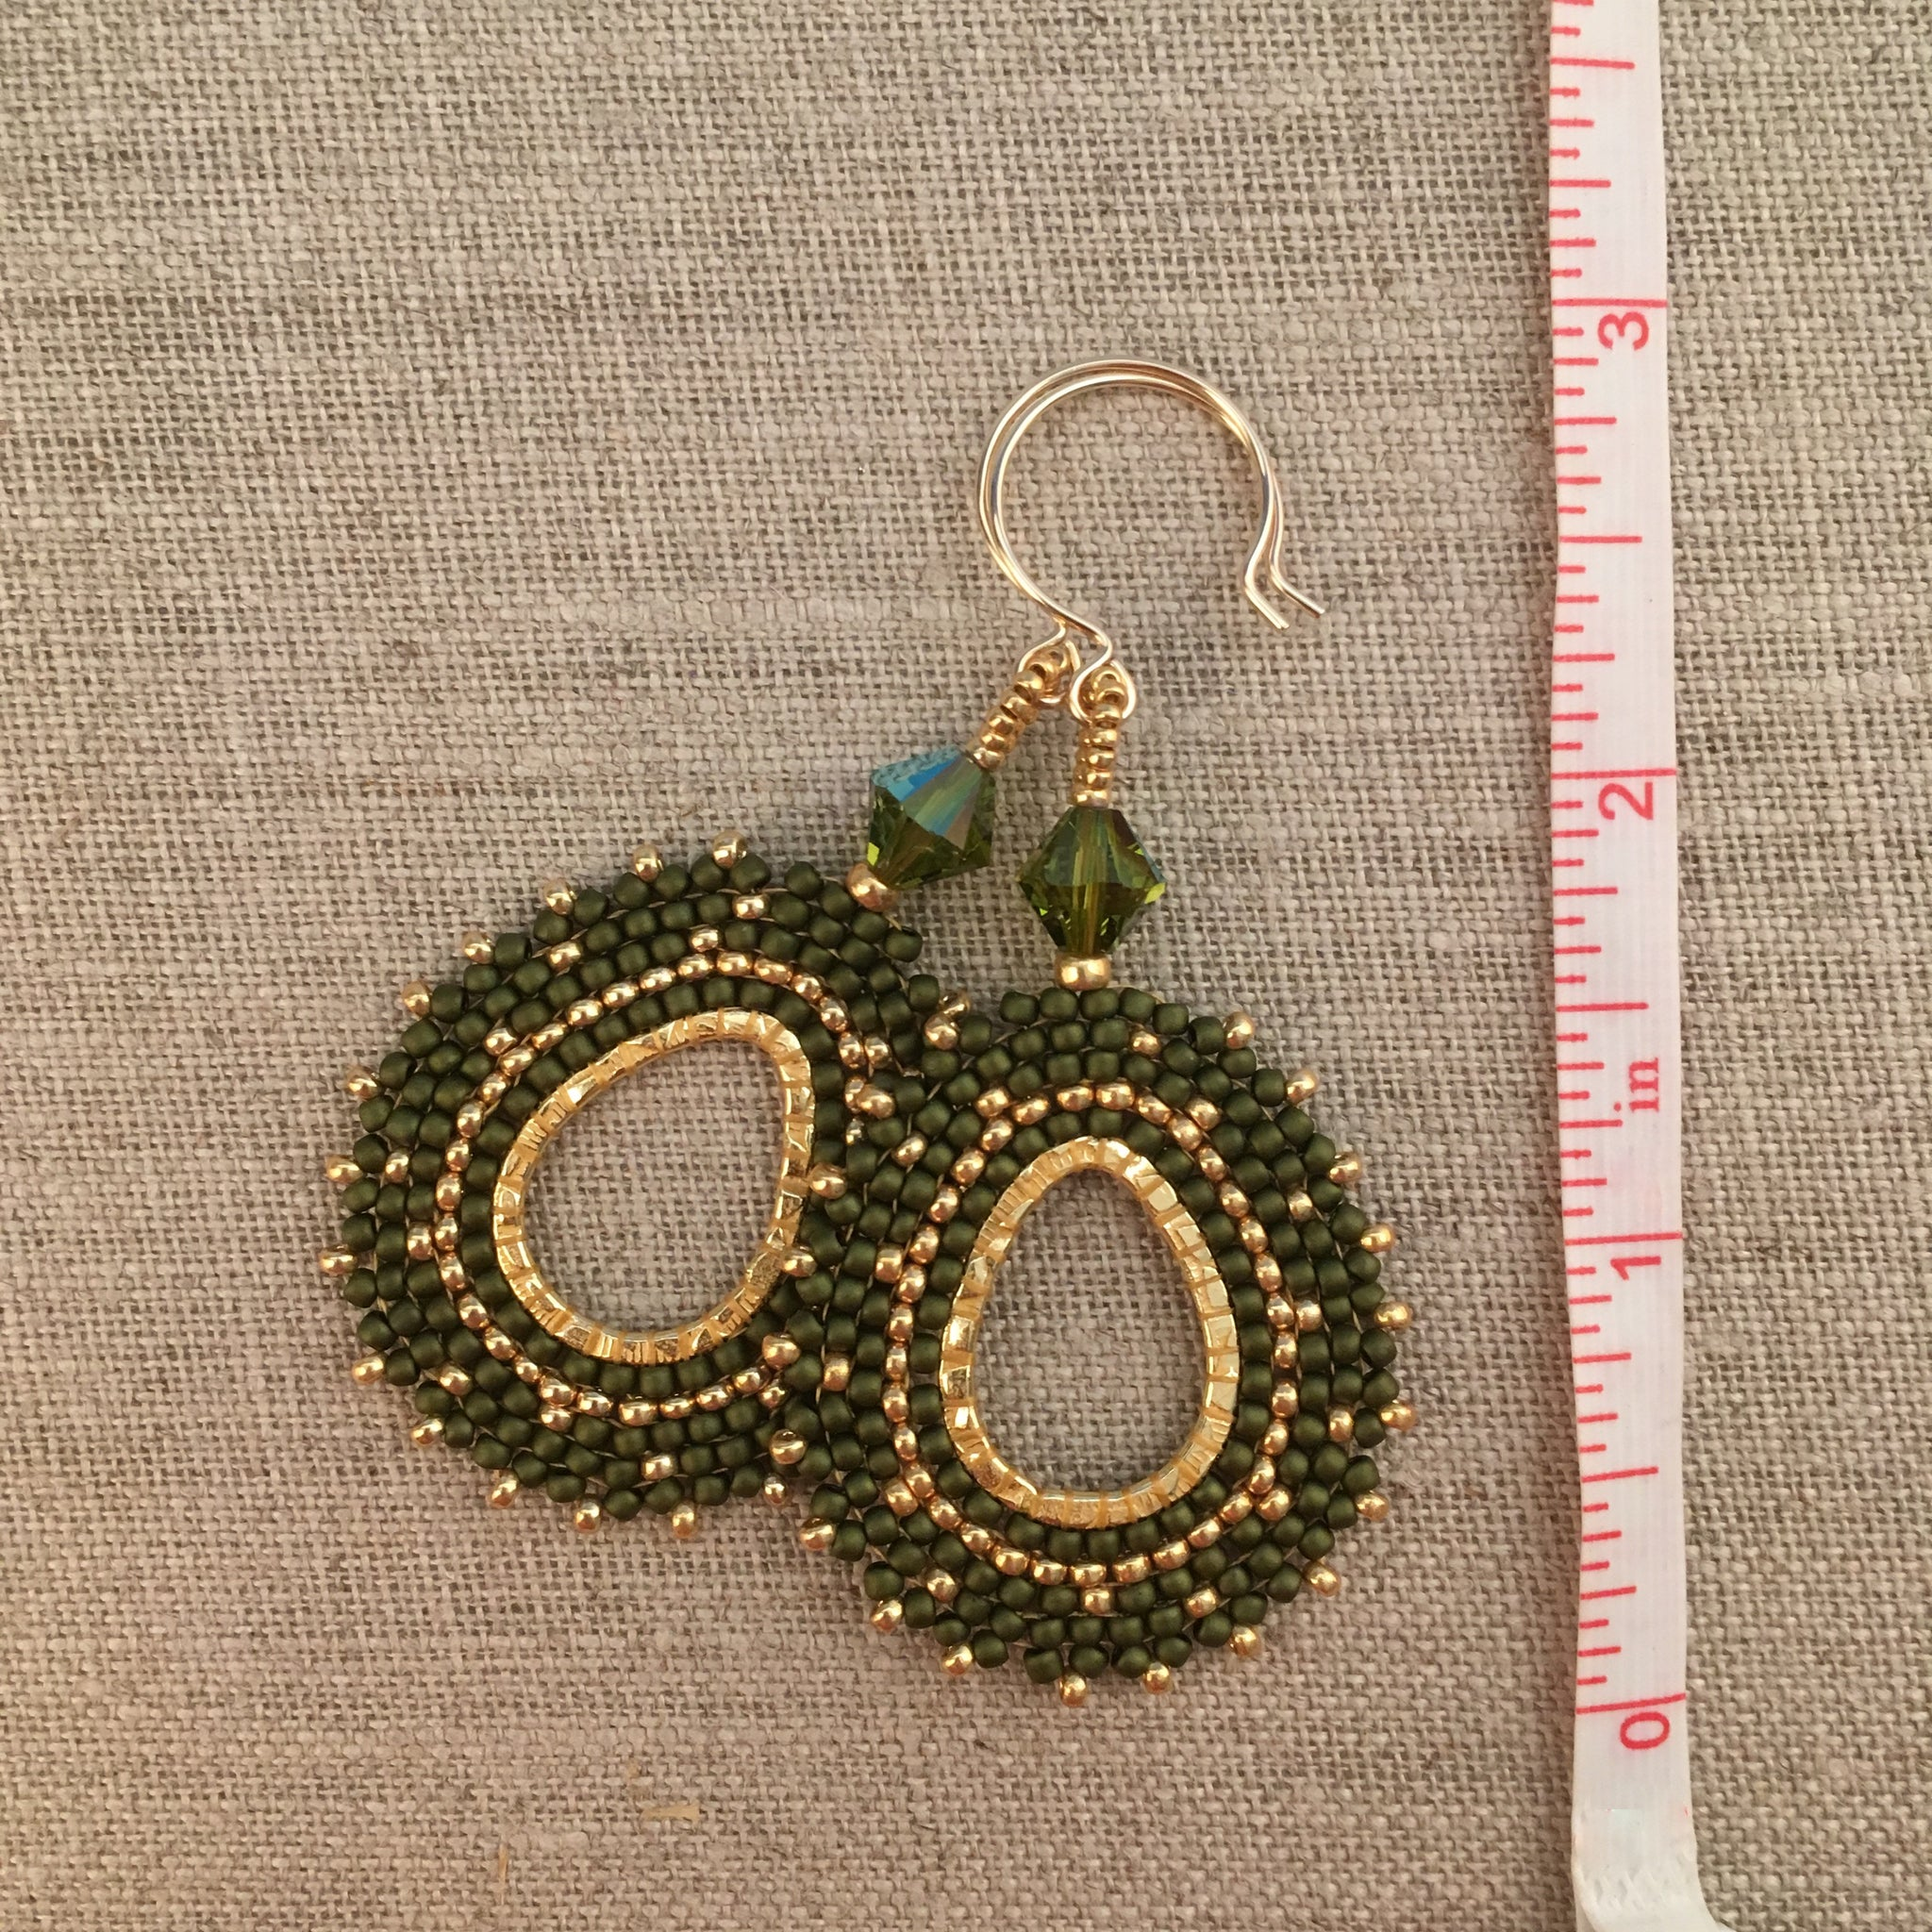 Olive Green and Gold Oval Hoop Beaded Earrings with Swarovski™ Crystals